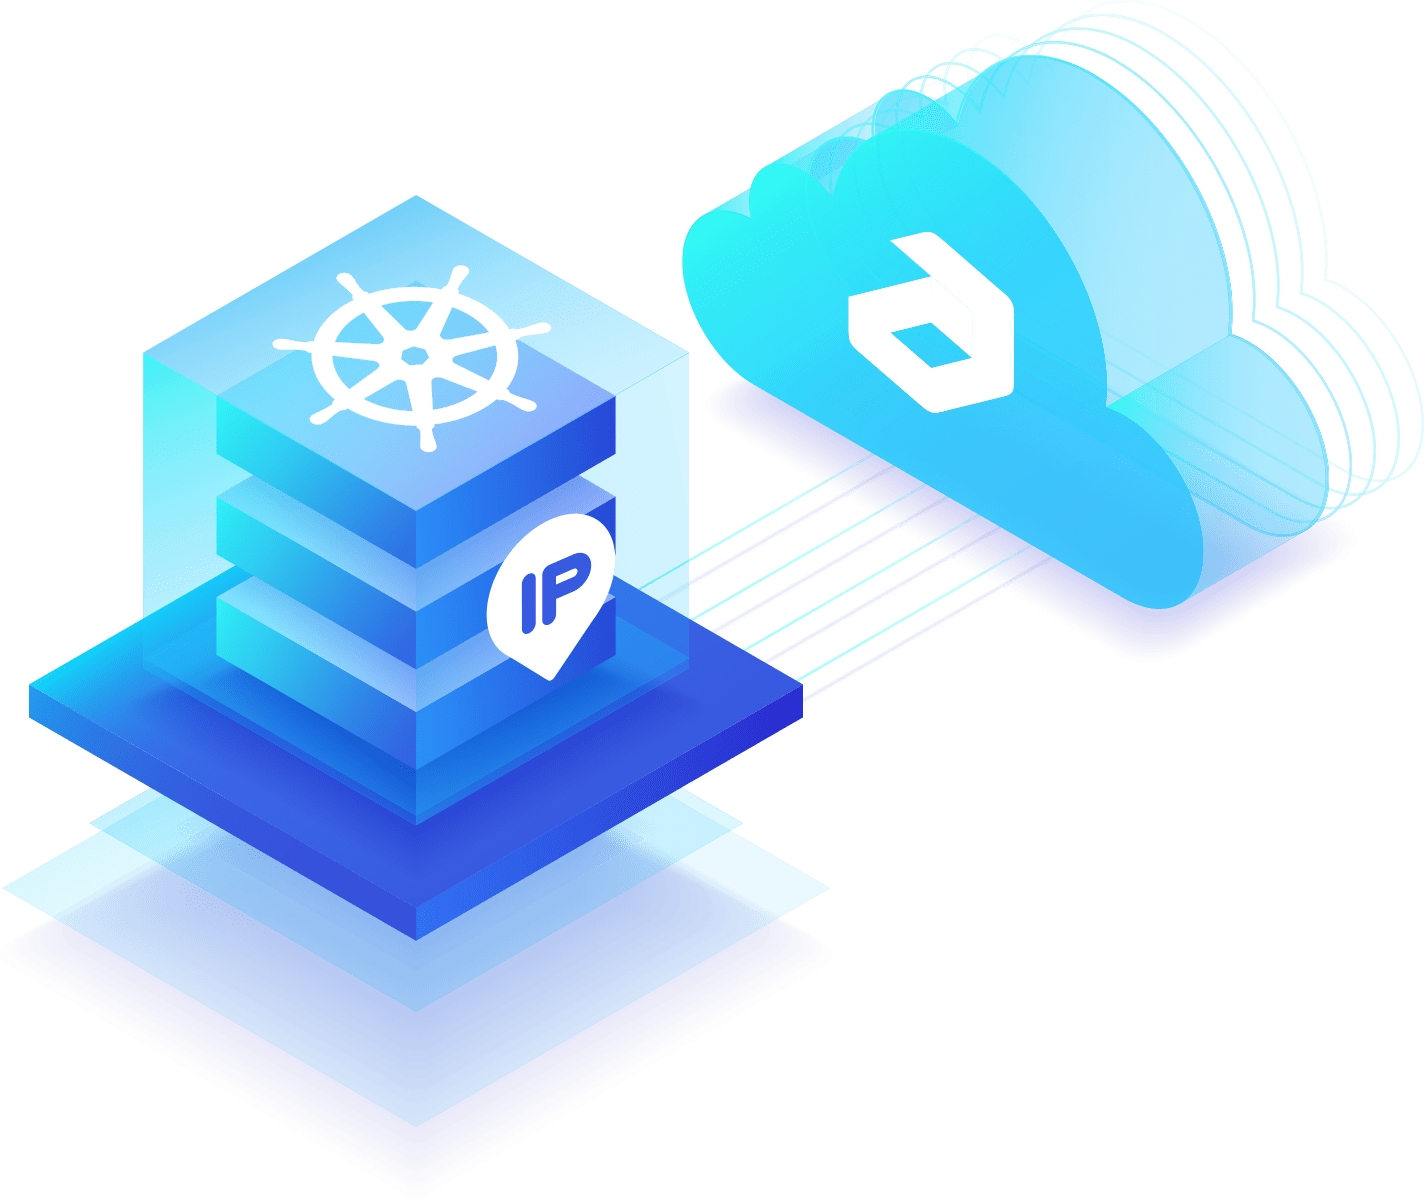 Public IP for Access to Kubernetes